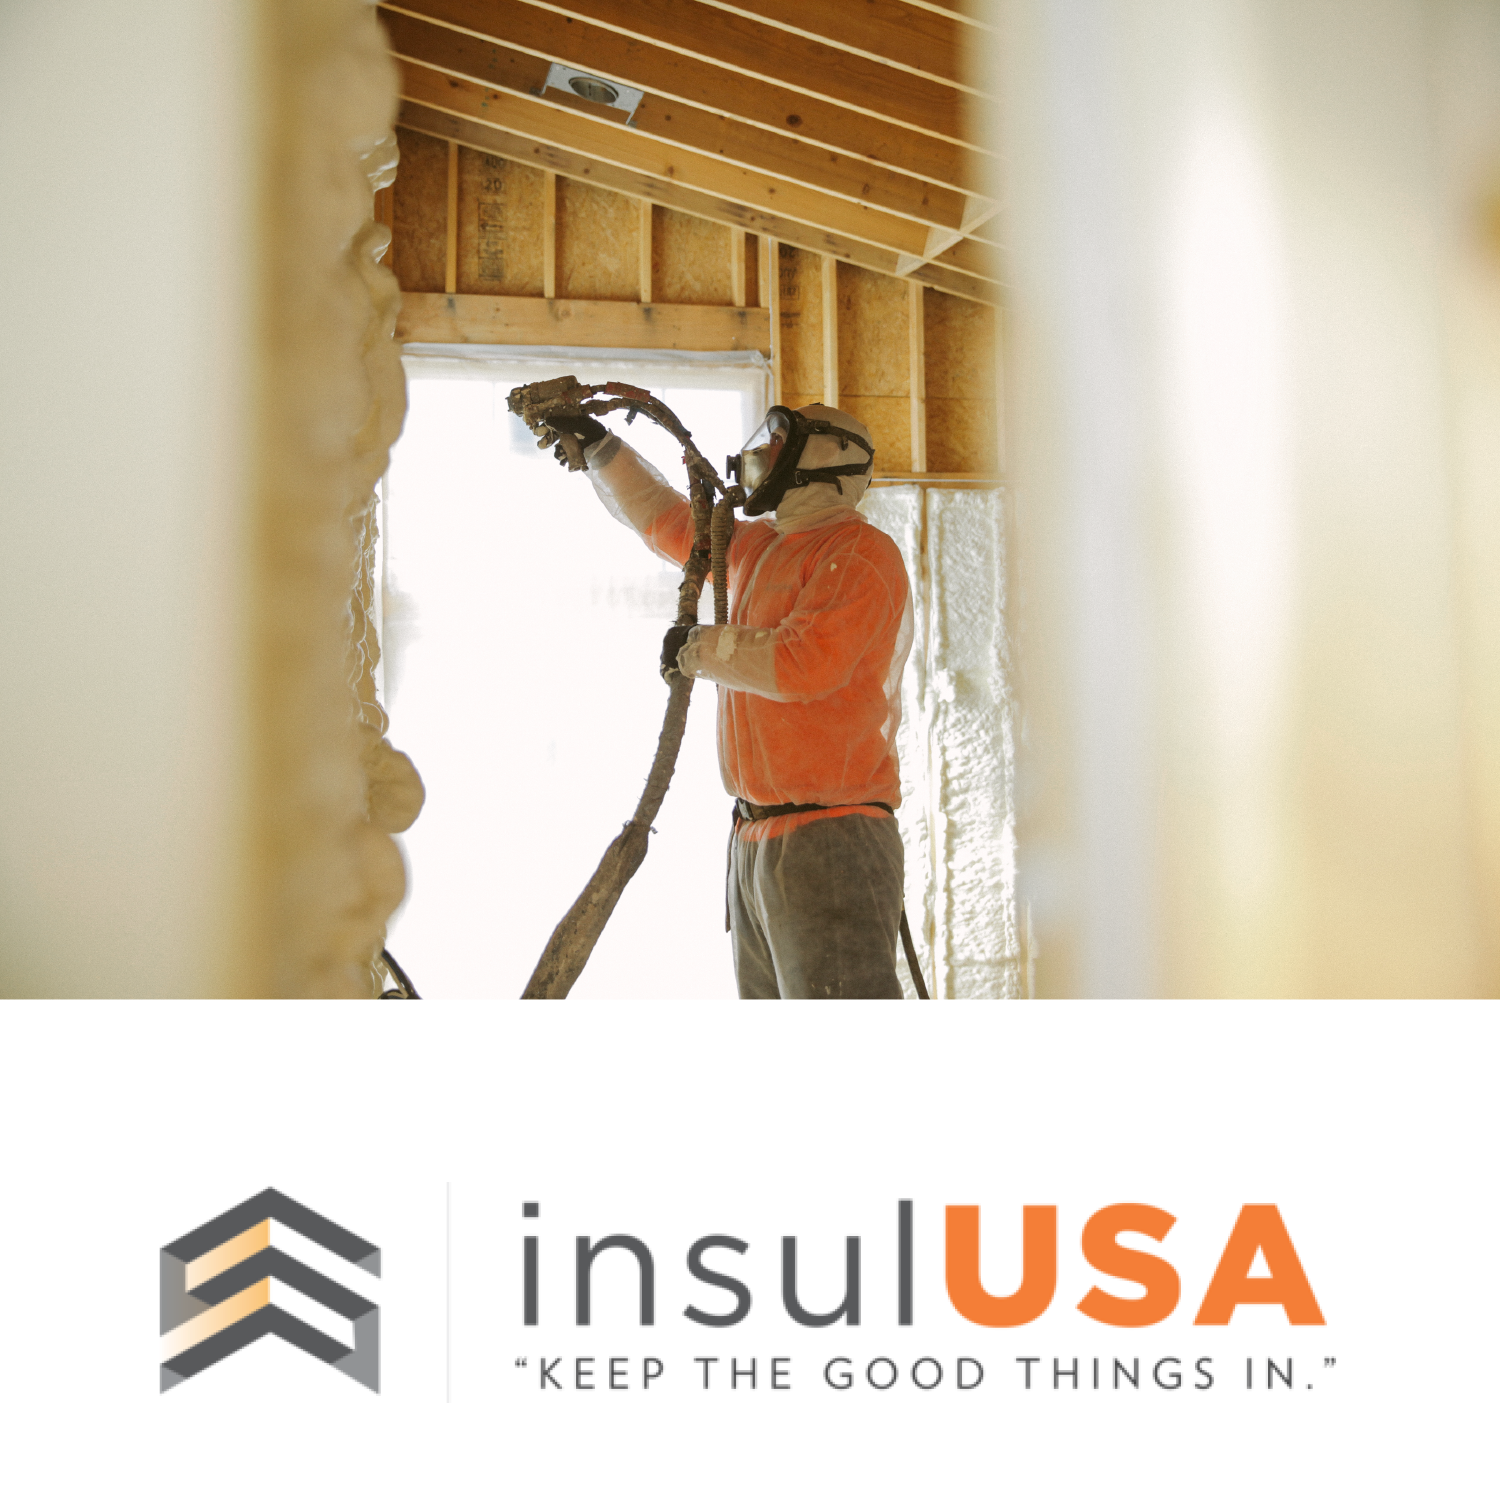 "<br> InsulUSA is a full service insulation company focused on maximizing energy efficiency.<br><br> <b><a href=""http://www.insulusa.com"">LEARN MORE >></a></b>"